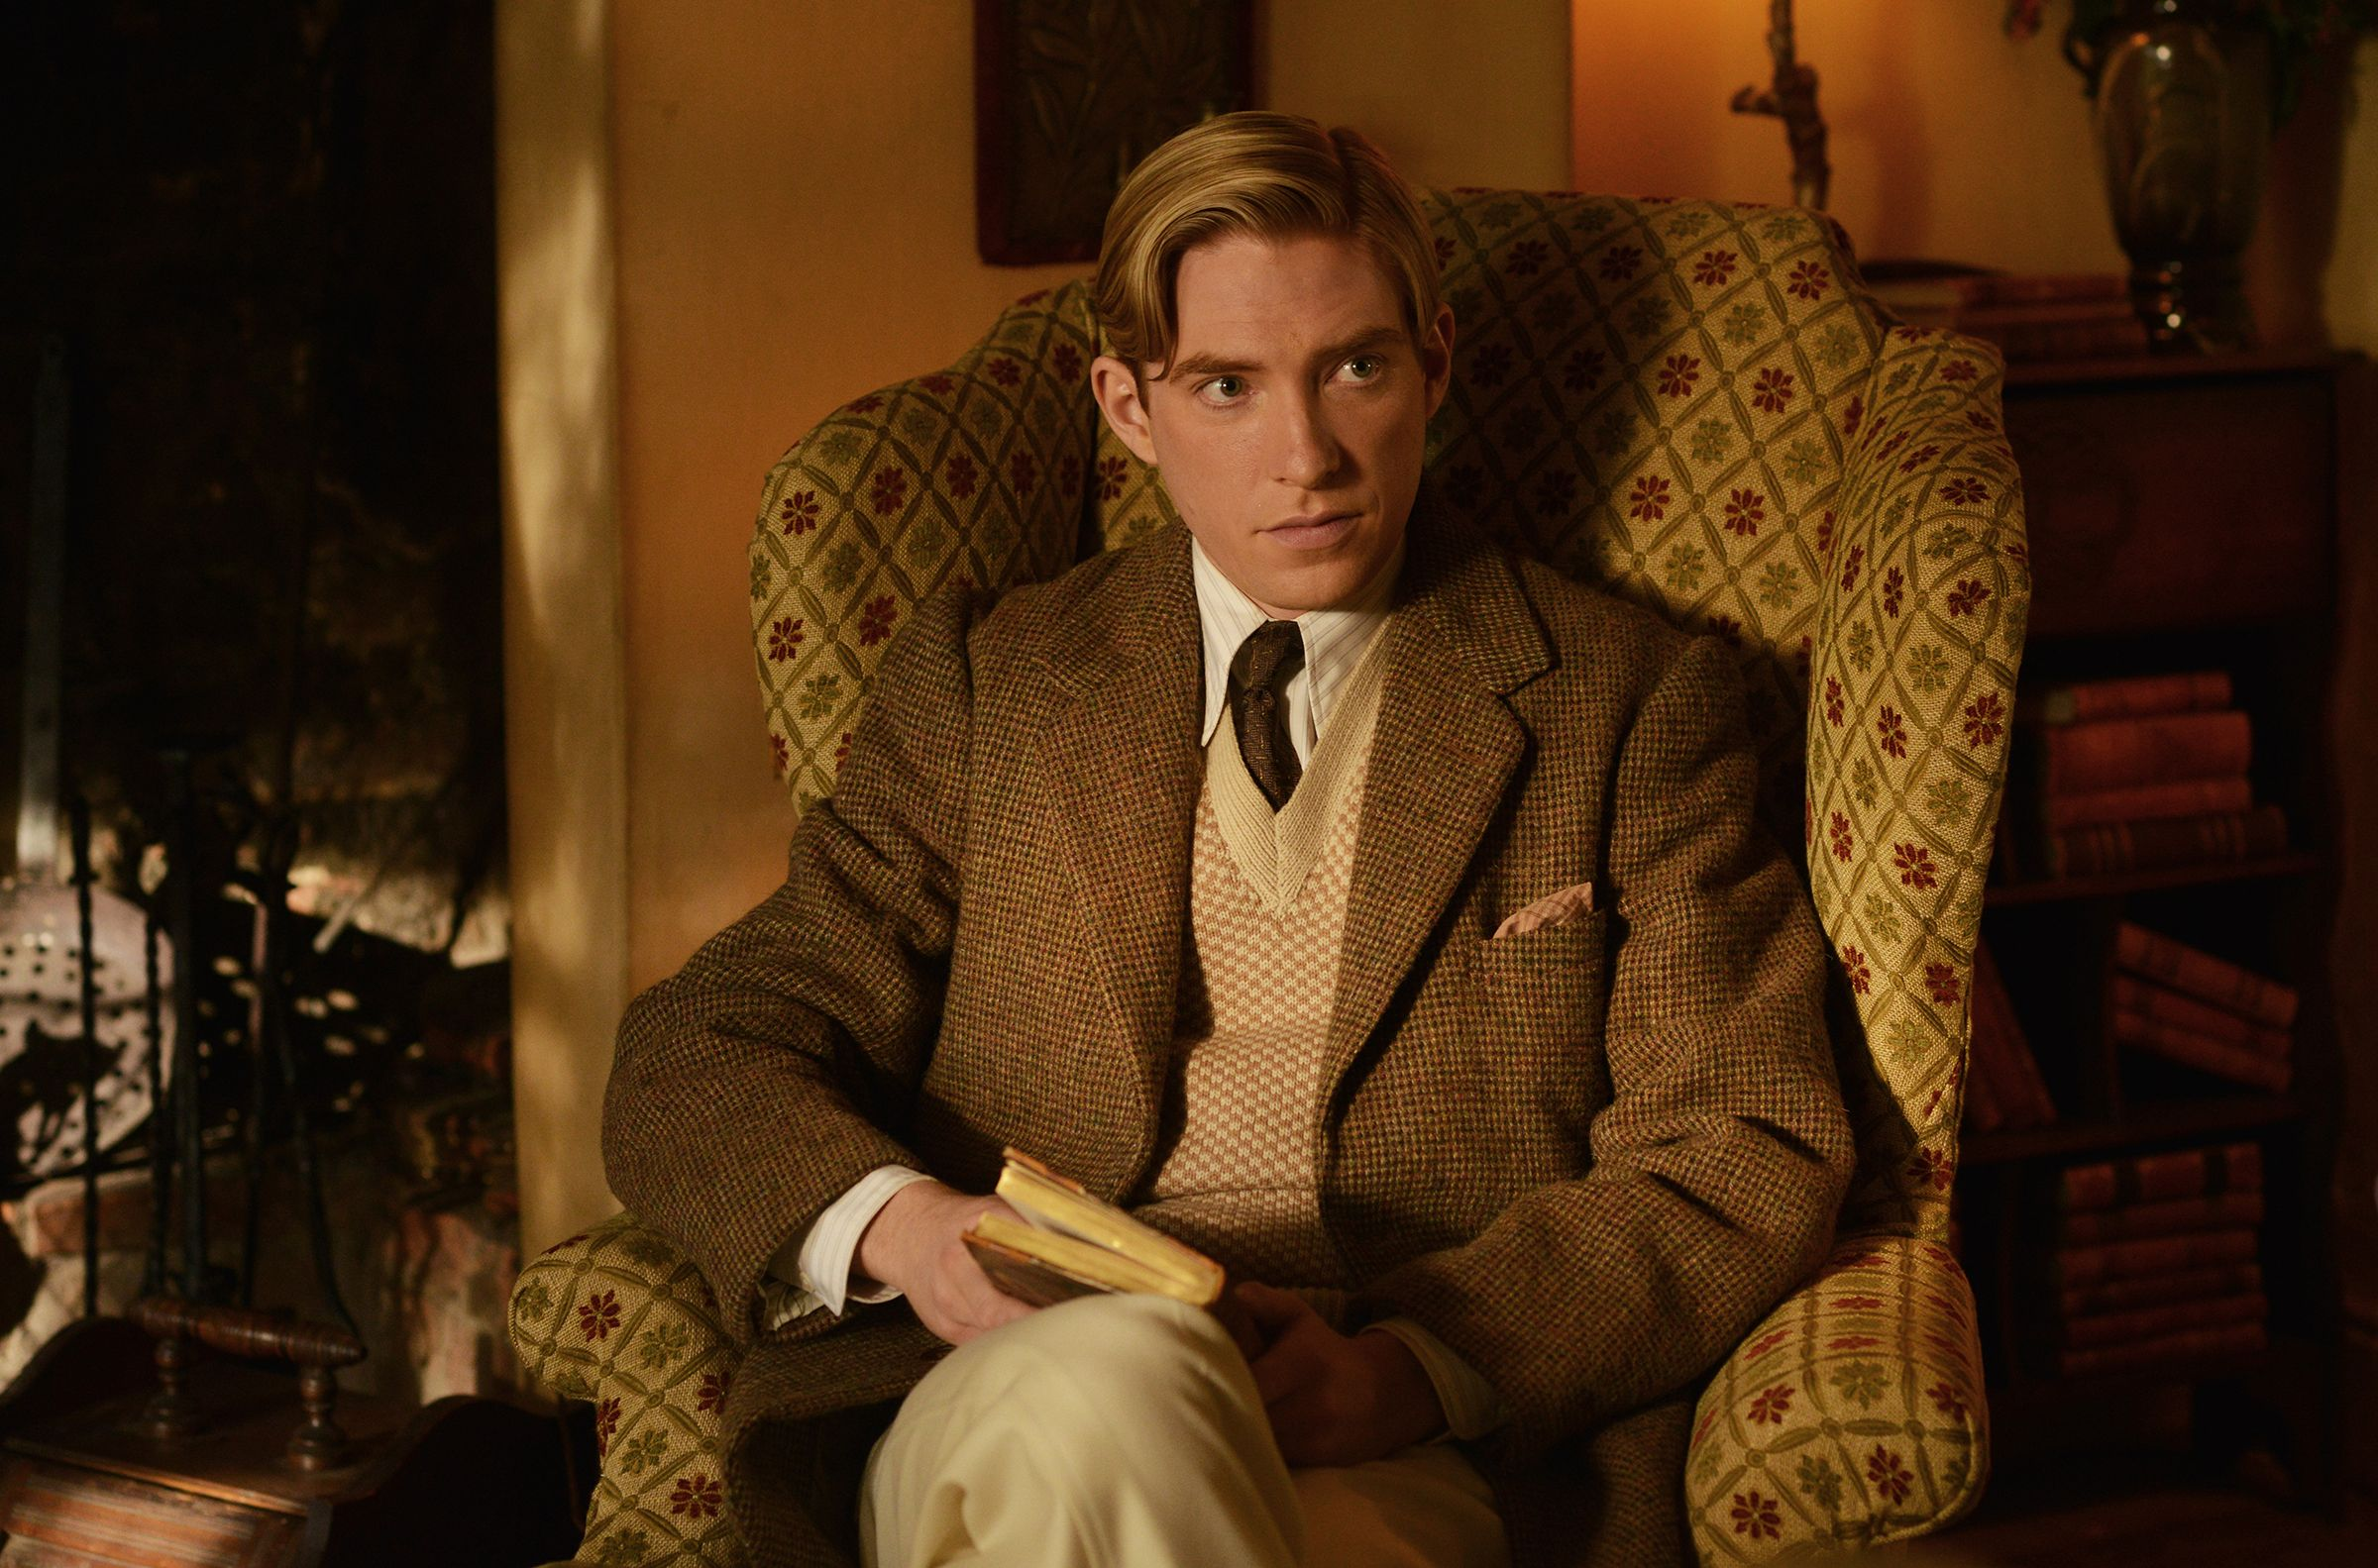 christopher robin - photo #14